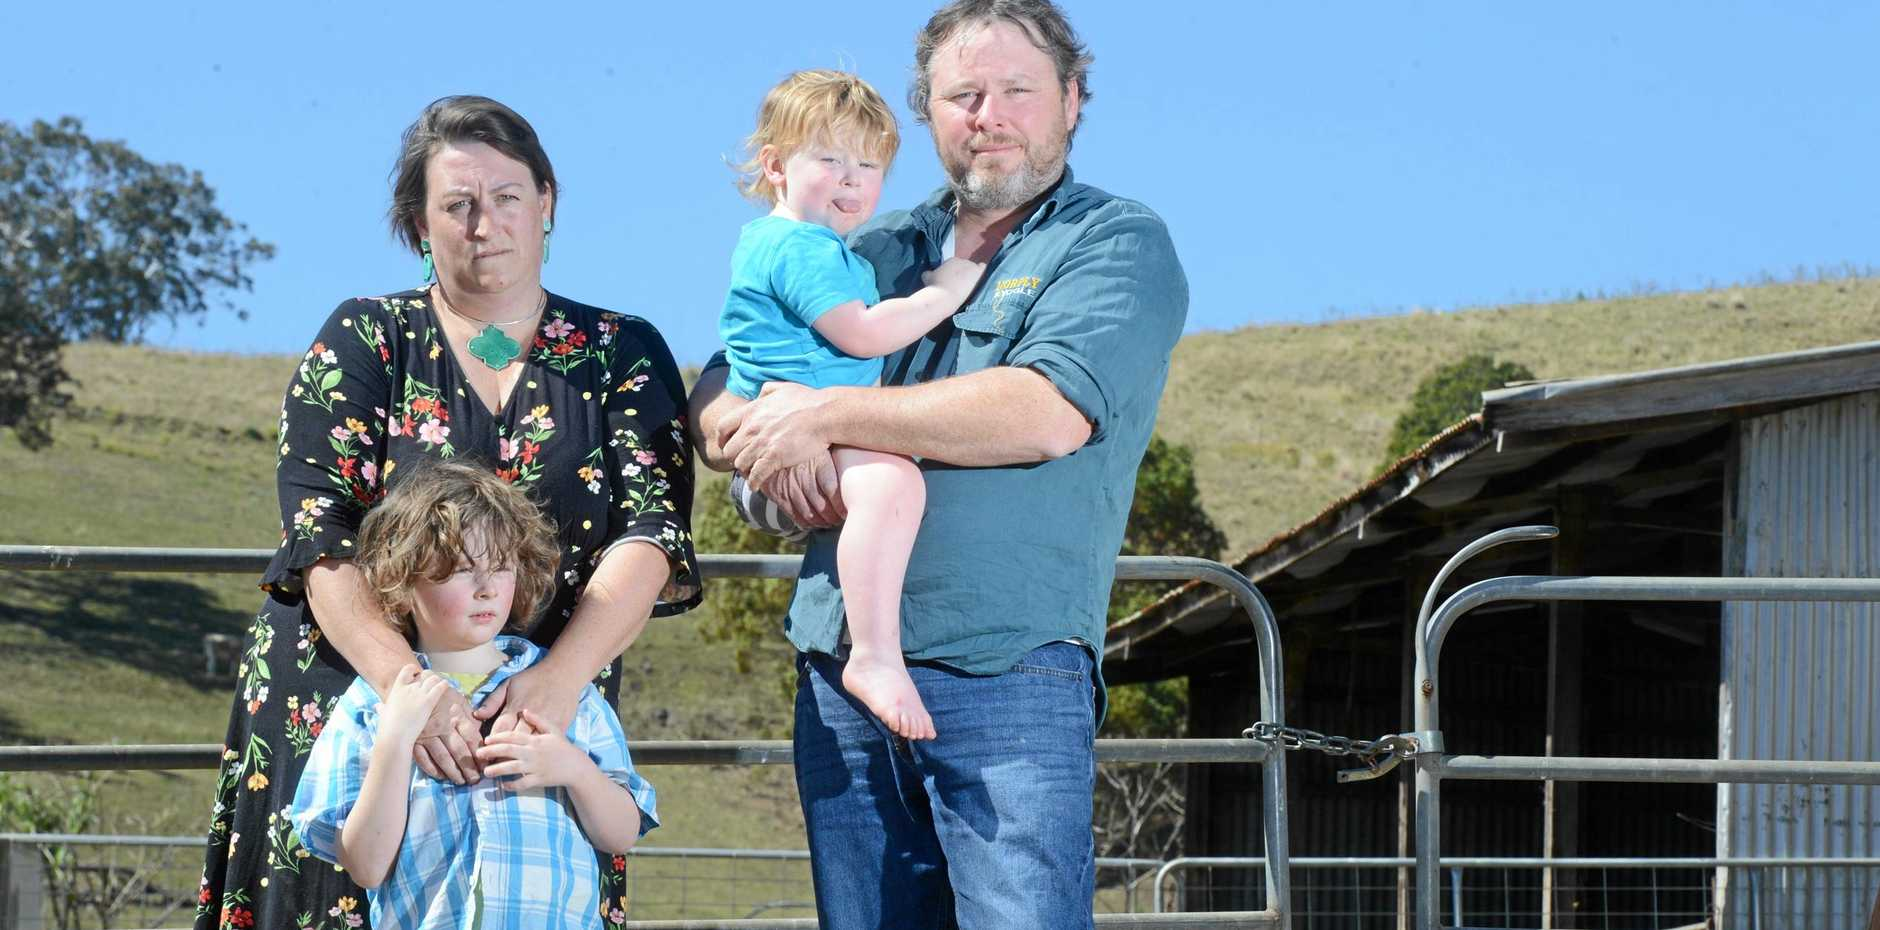 Dairy farmer Shane Hickey with wife Julia and sons Elliott, 5, and Sampson, 2, at their property near Kyogle.